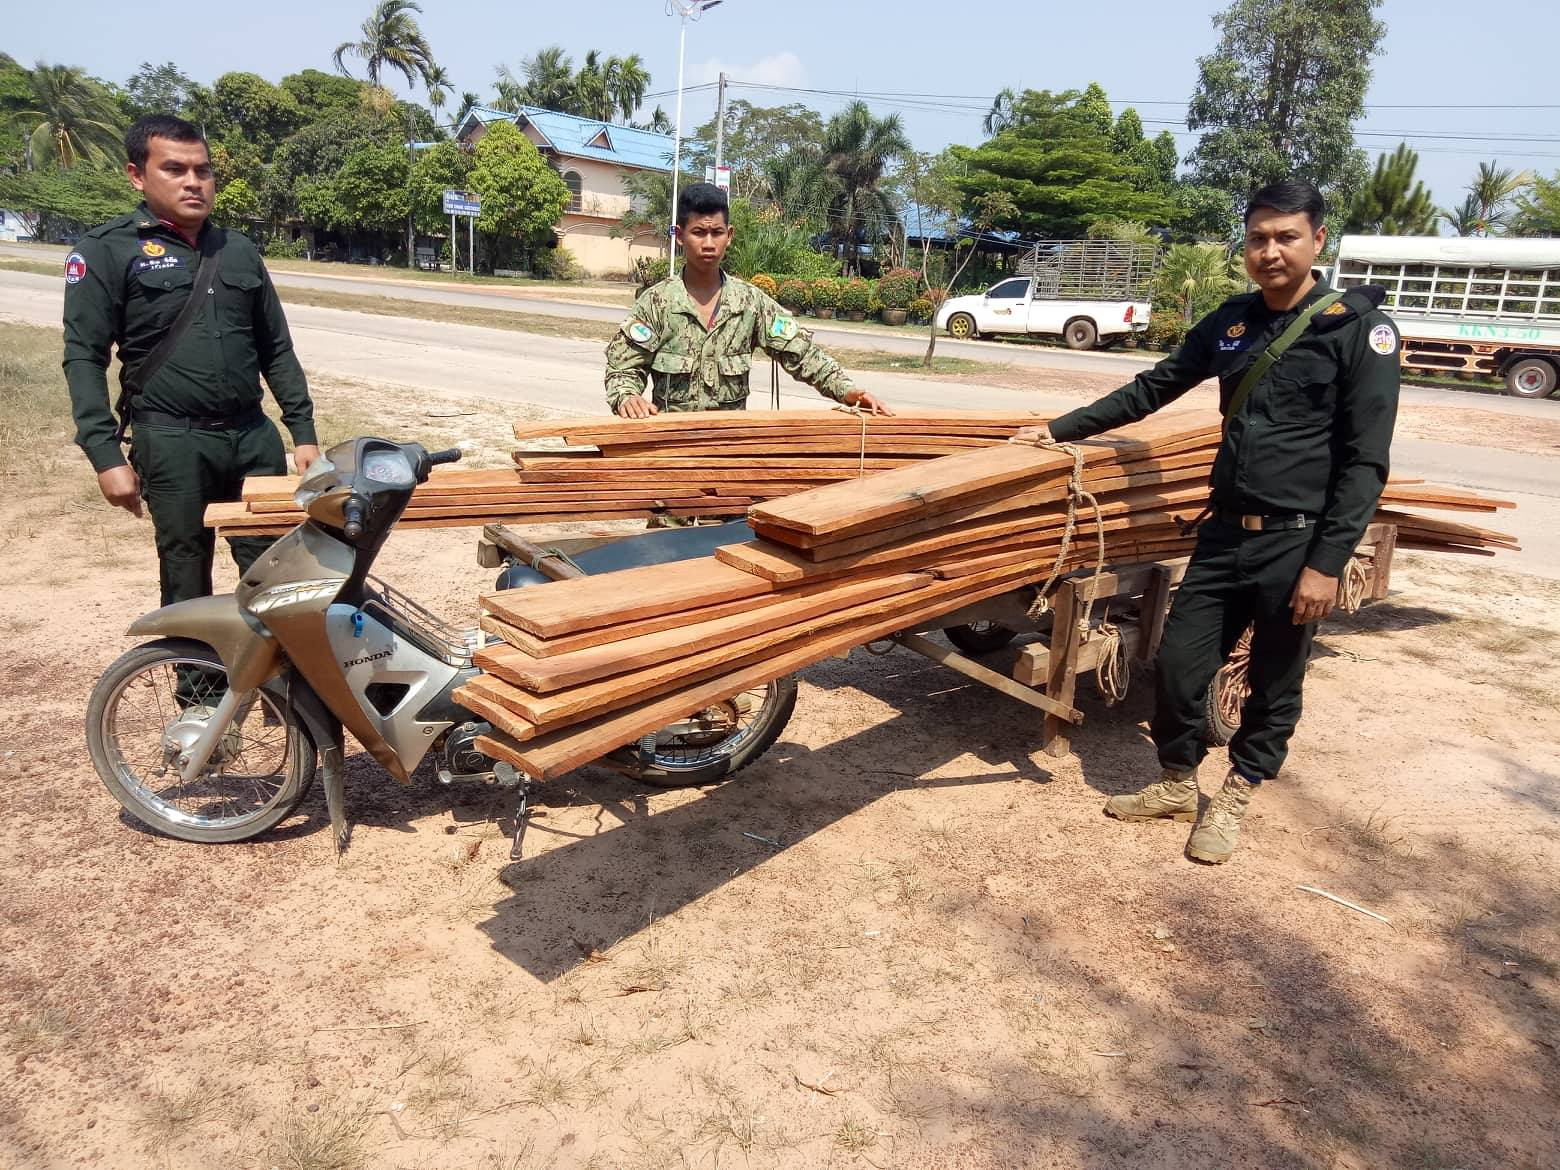 construction timber The rangers stopped one motorbike transporting construction timber Illegal timber Cambodia